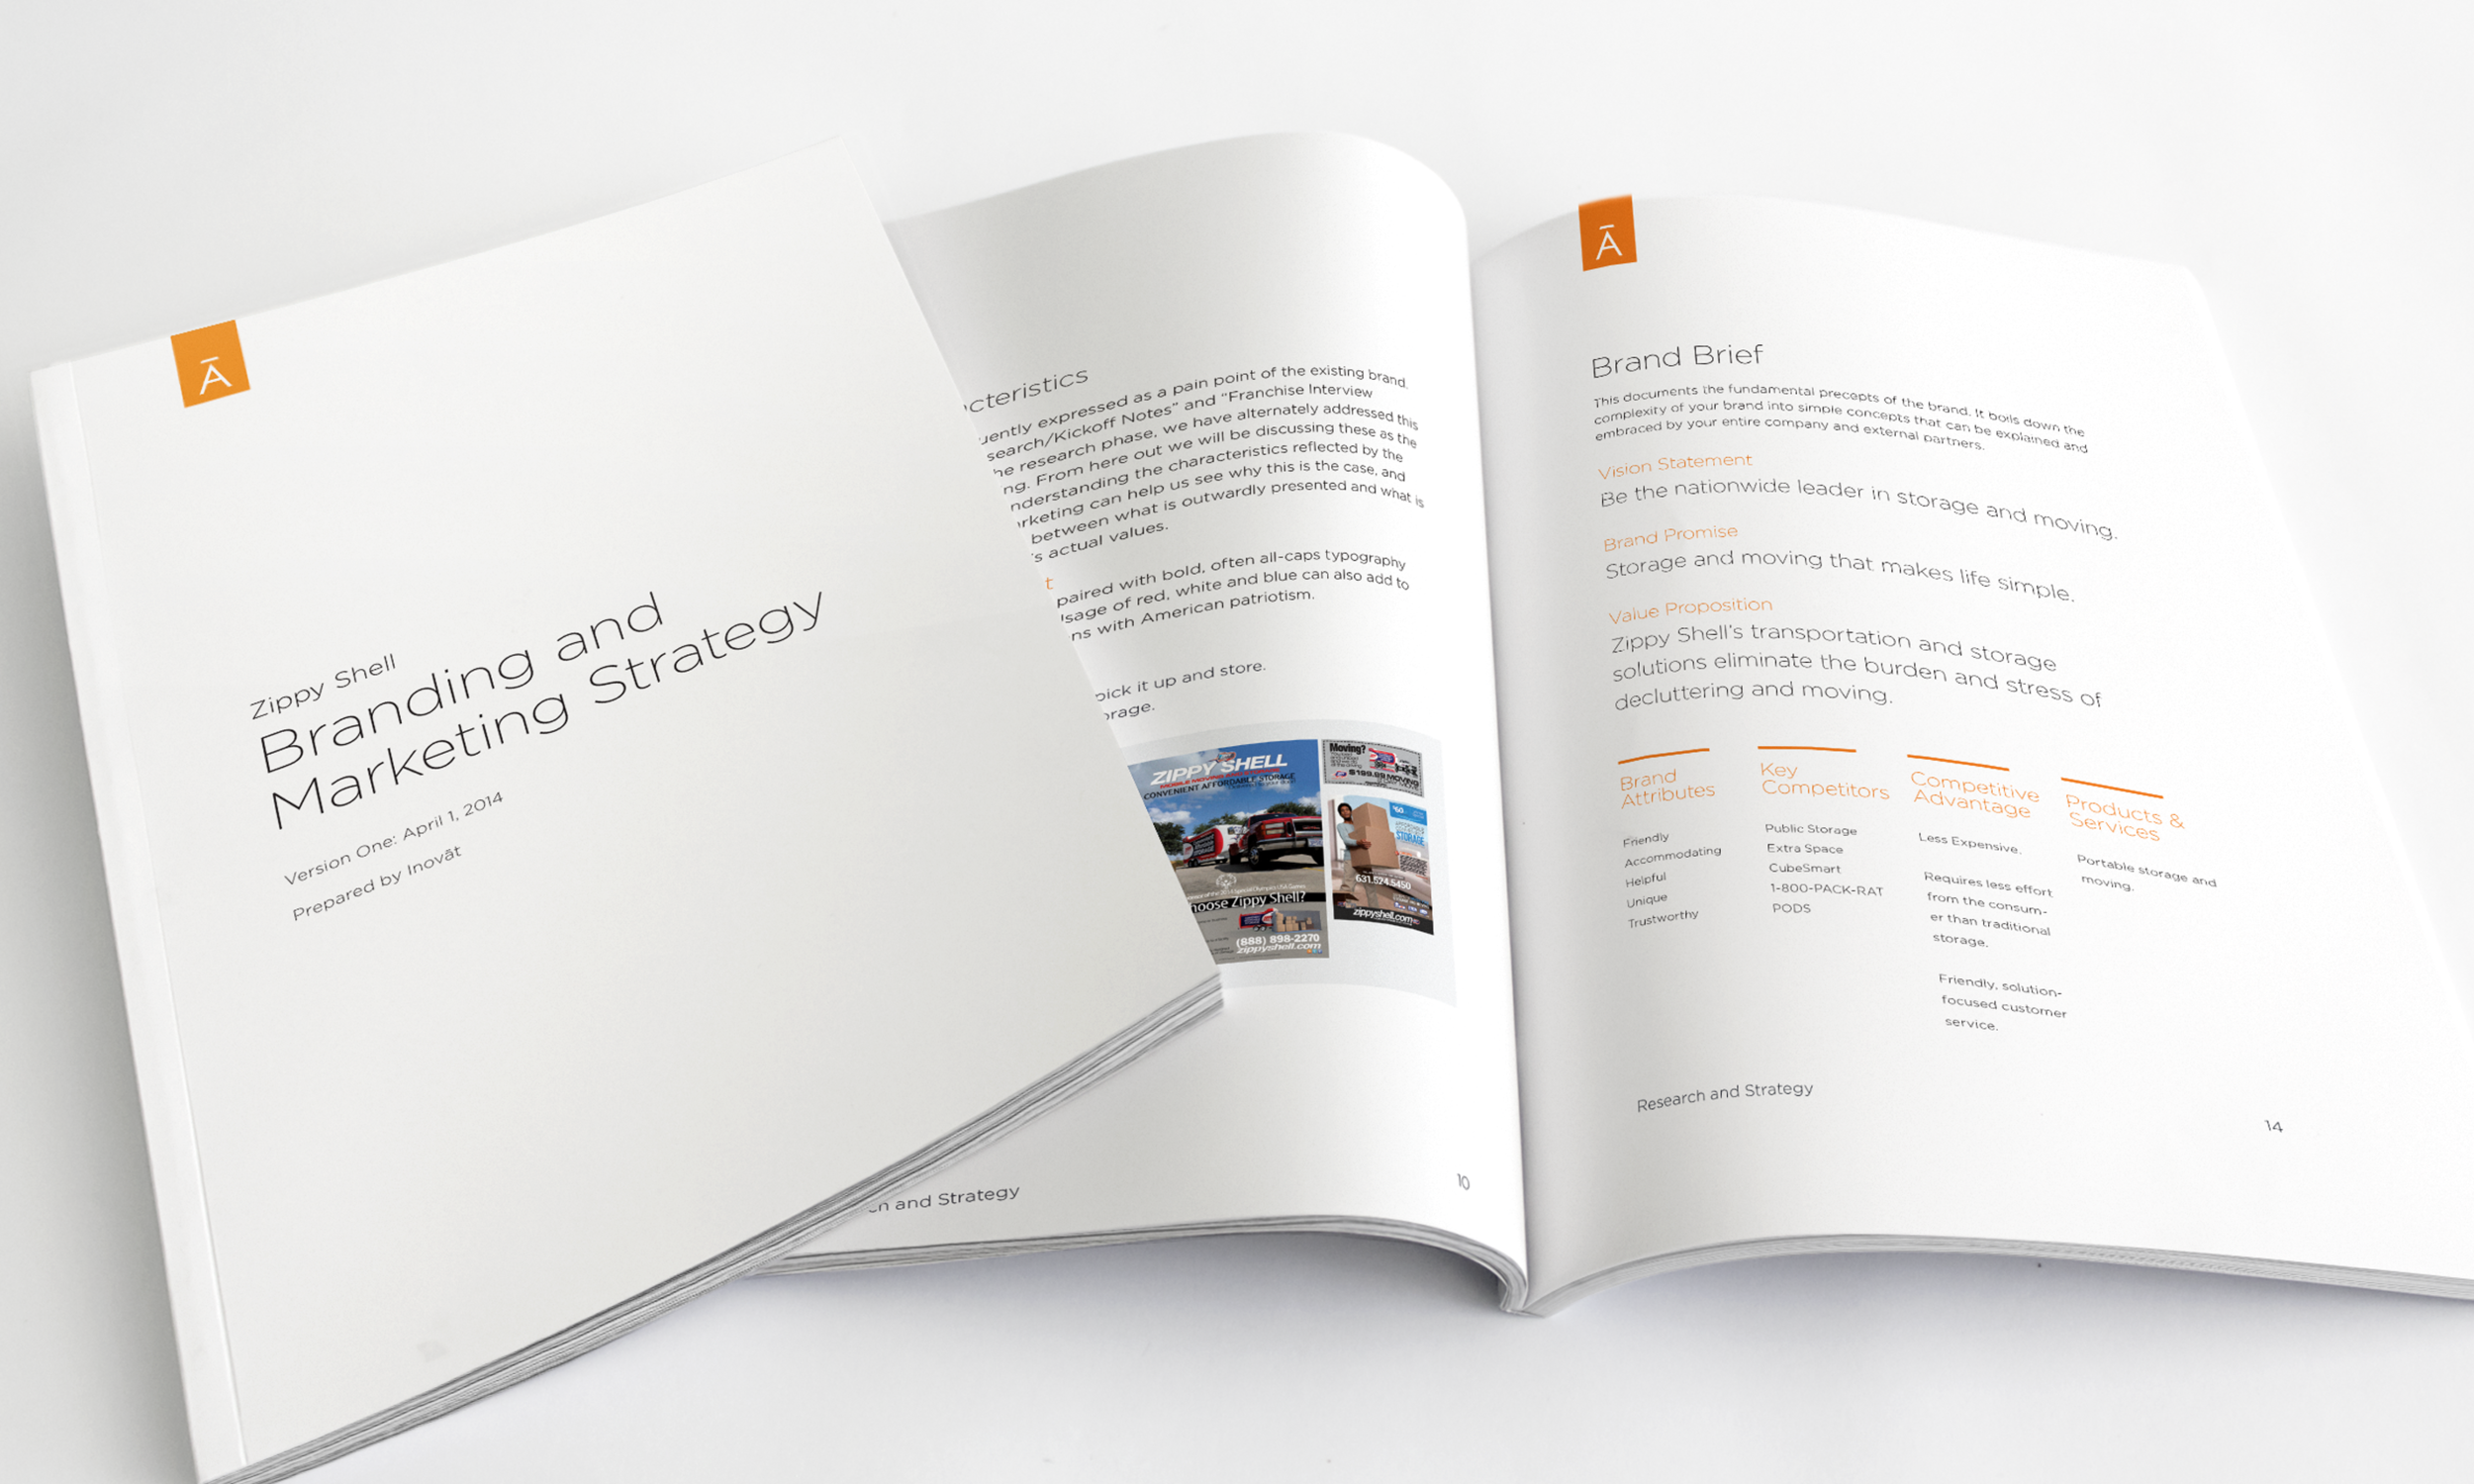 The final report totaled 100 pages not including the raw data readouts and covered competitive analysis, audience insights, market segmentation, branding, social media and marketing strategy.